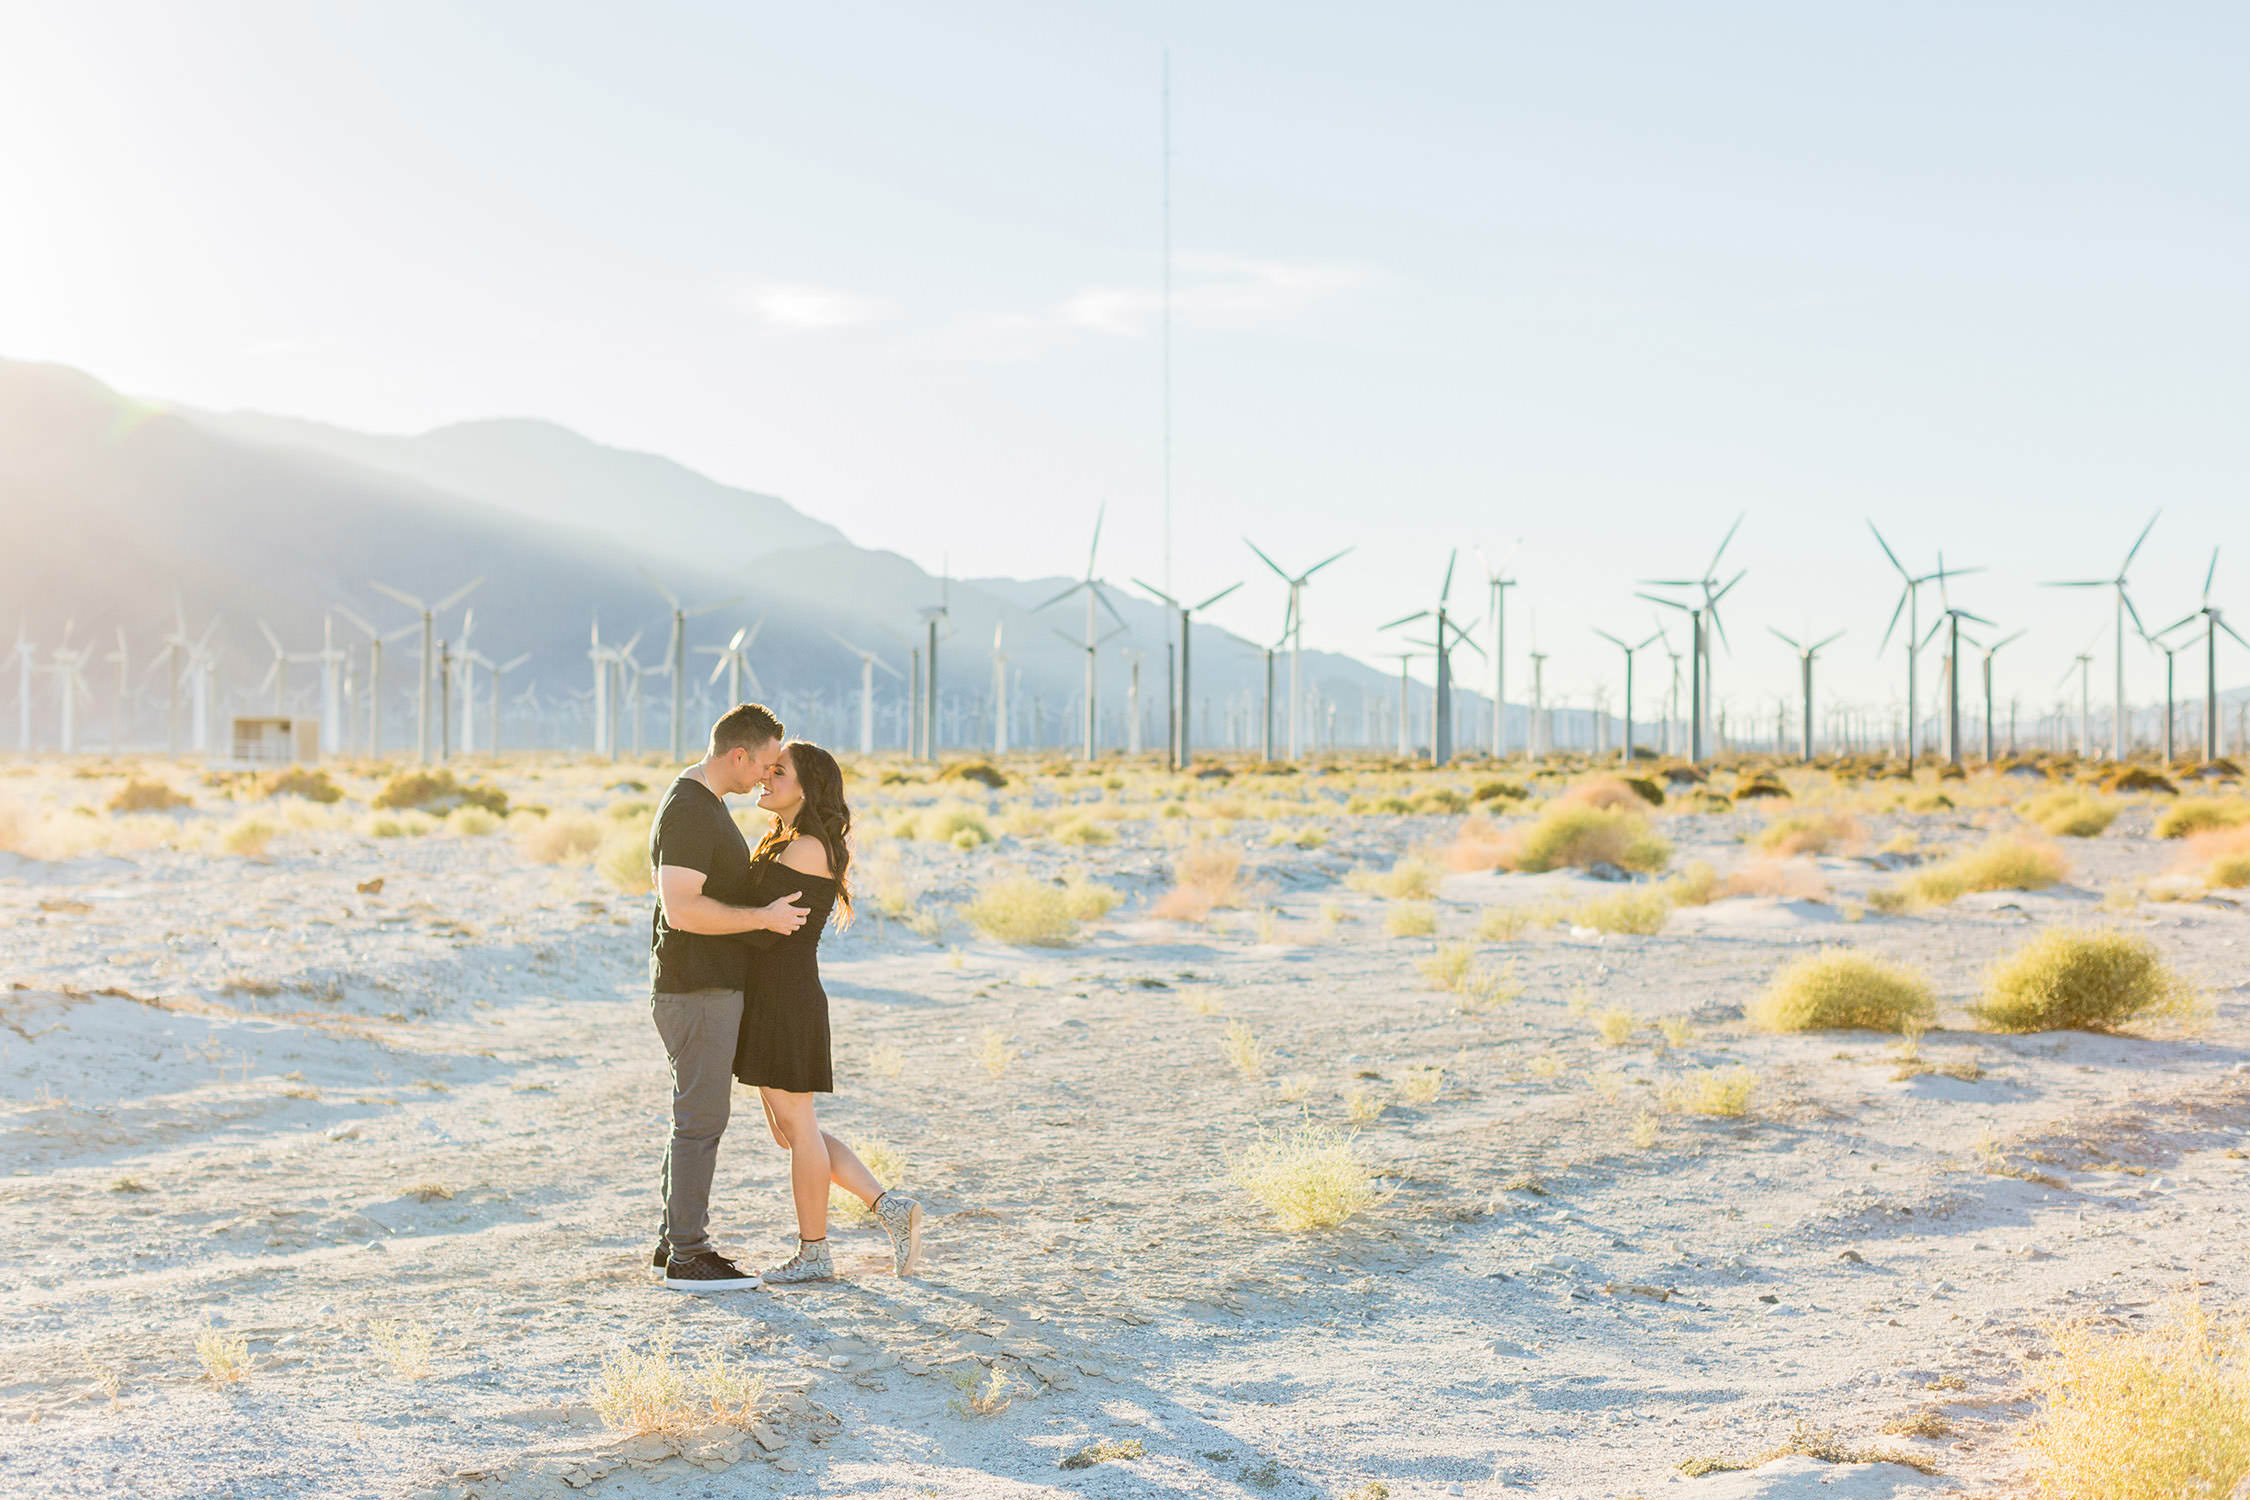 Engagement session at the windmills in palm springs, southern california